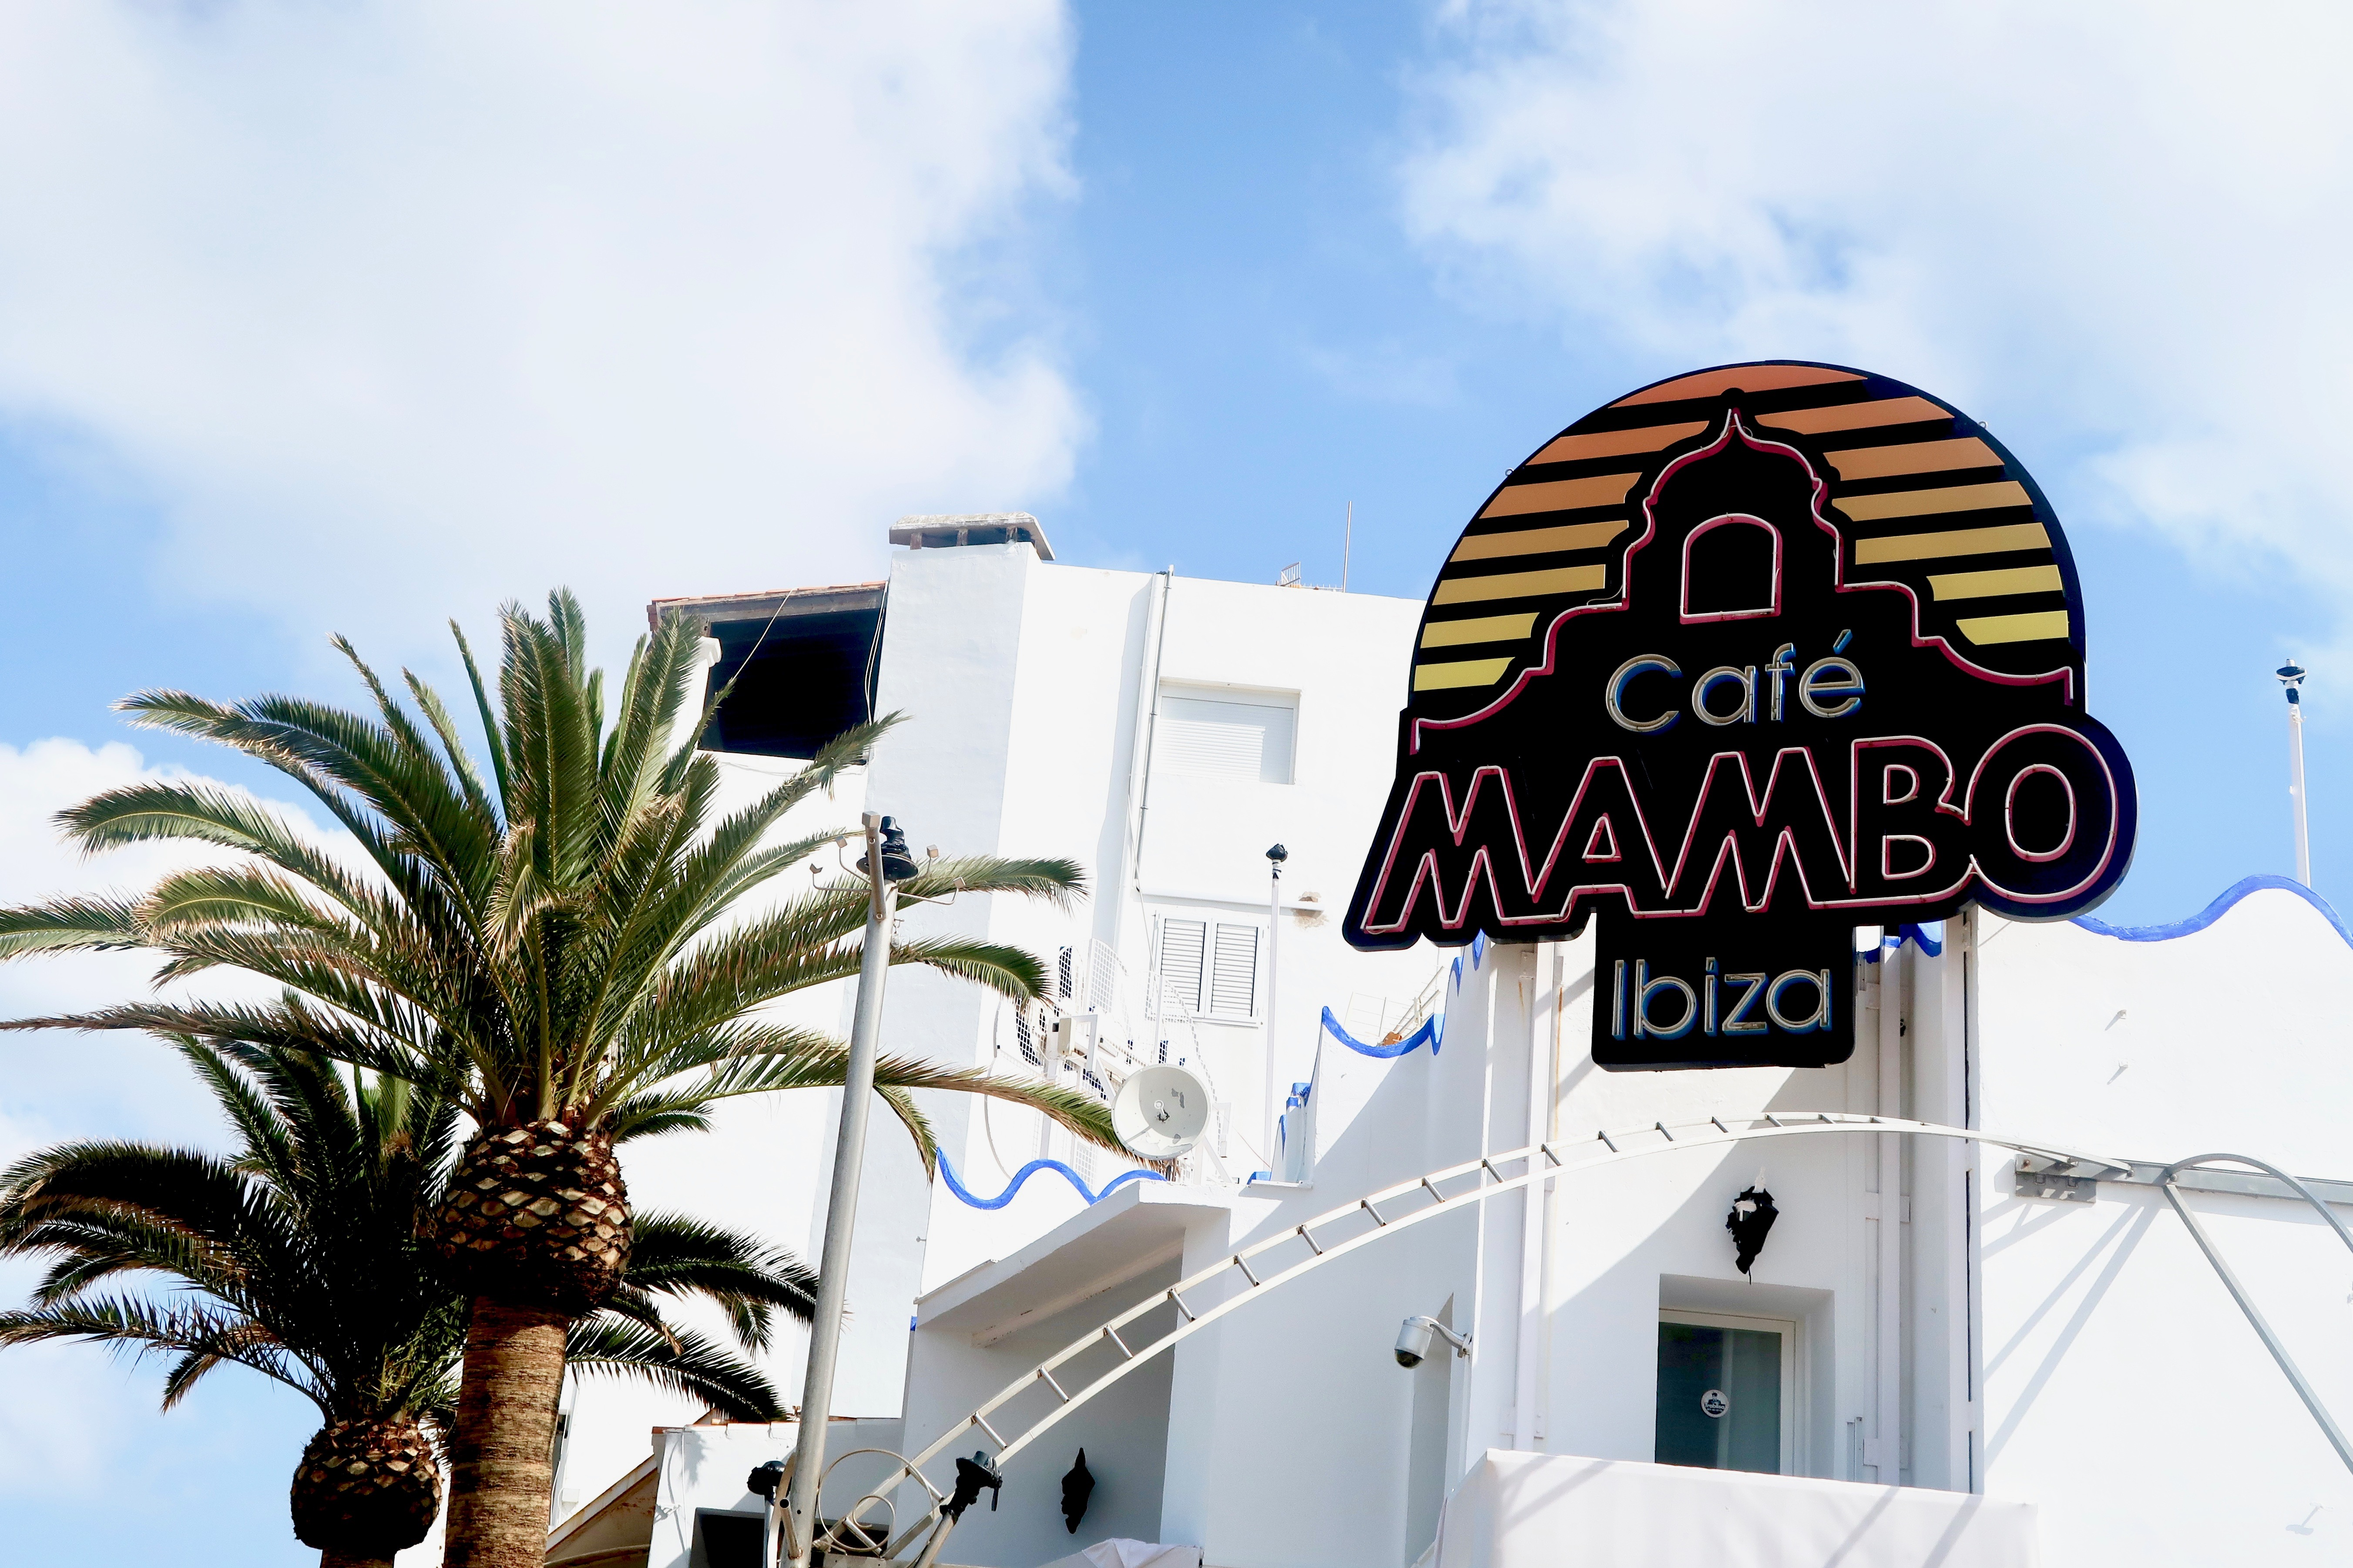 Cafe Mambo | Holiday & Wanderlust Inspo for the White Isle | Where's good to eat in San Antonio Ibiza | Travel tips & guide | Elle Blonde Luxury Lifestyle Destination Blog